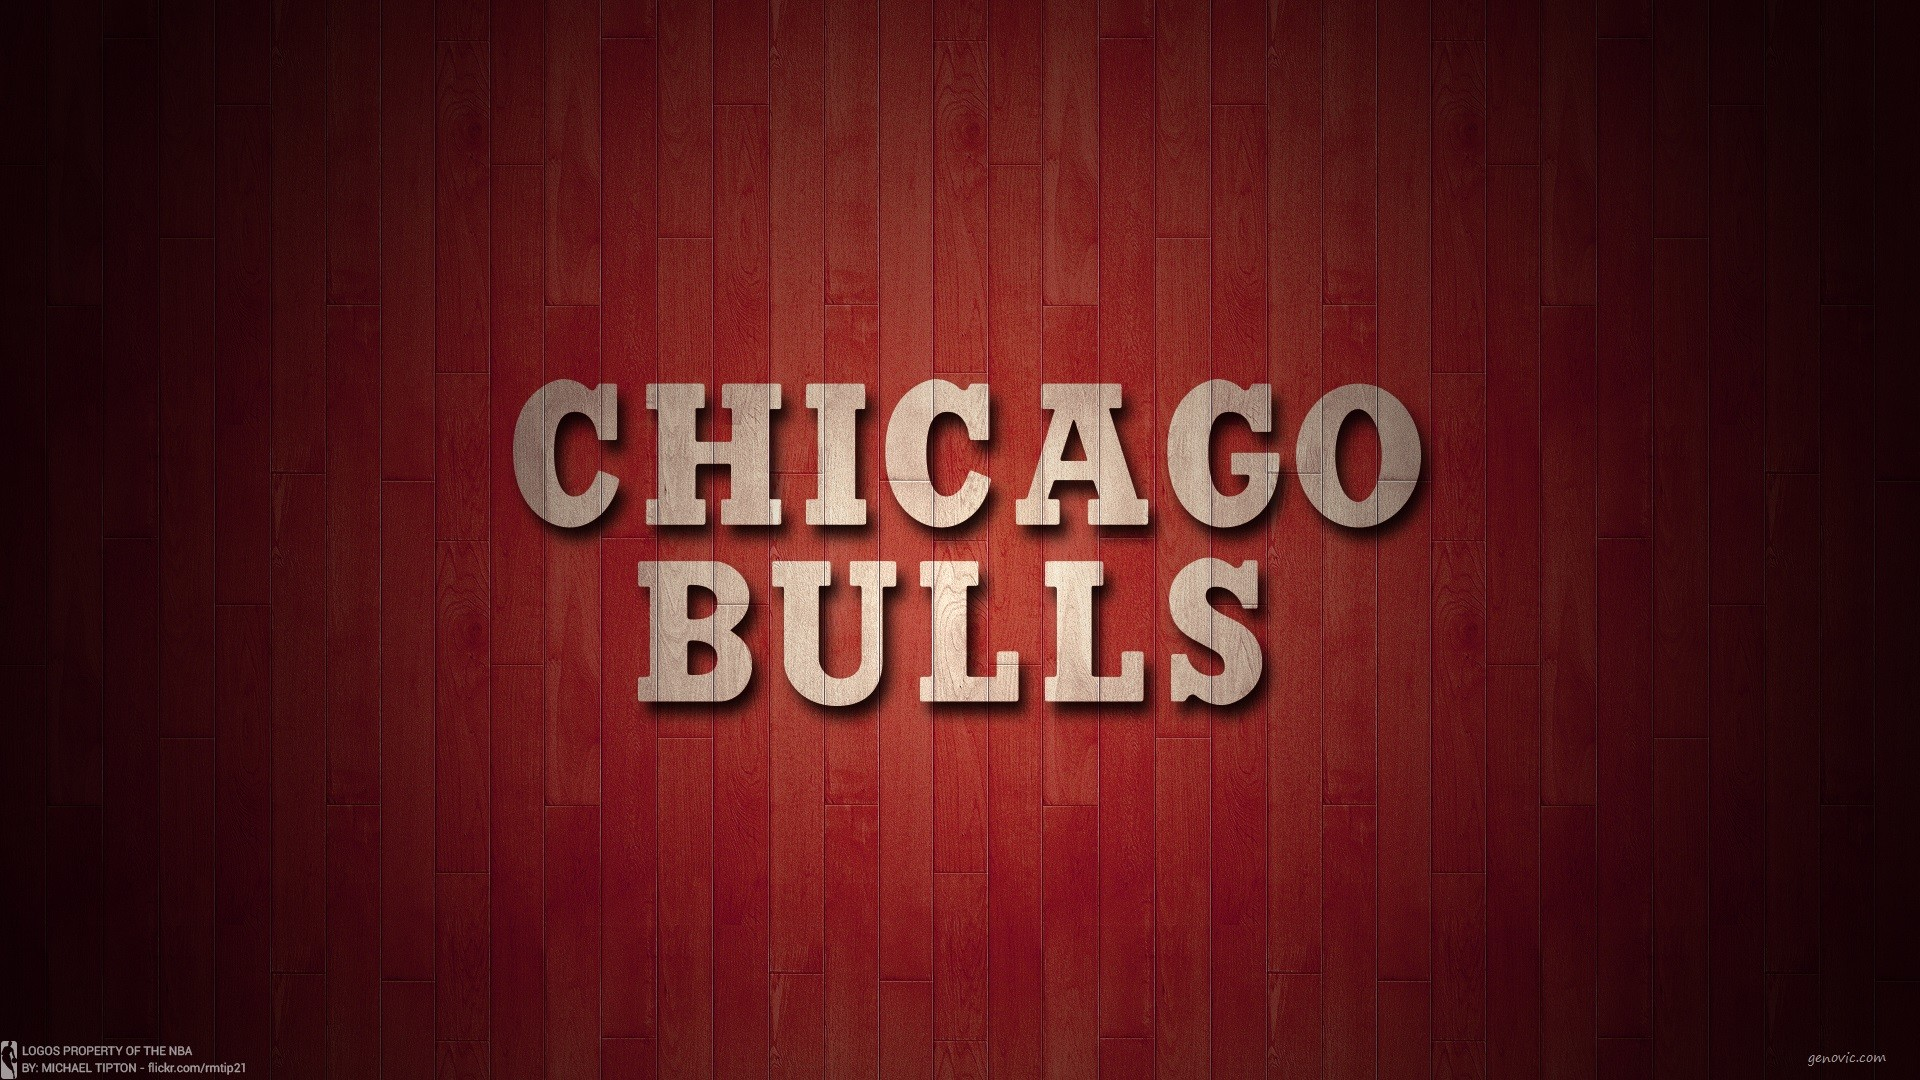 1920x1080 Backgrounds In High Quality - chicago bulls wallpaper (Hill Ross 1920 x  1080) | ololoshenka | Pinterest | Chicago bulls, Bulls wallpaper and Chicago